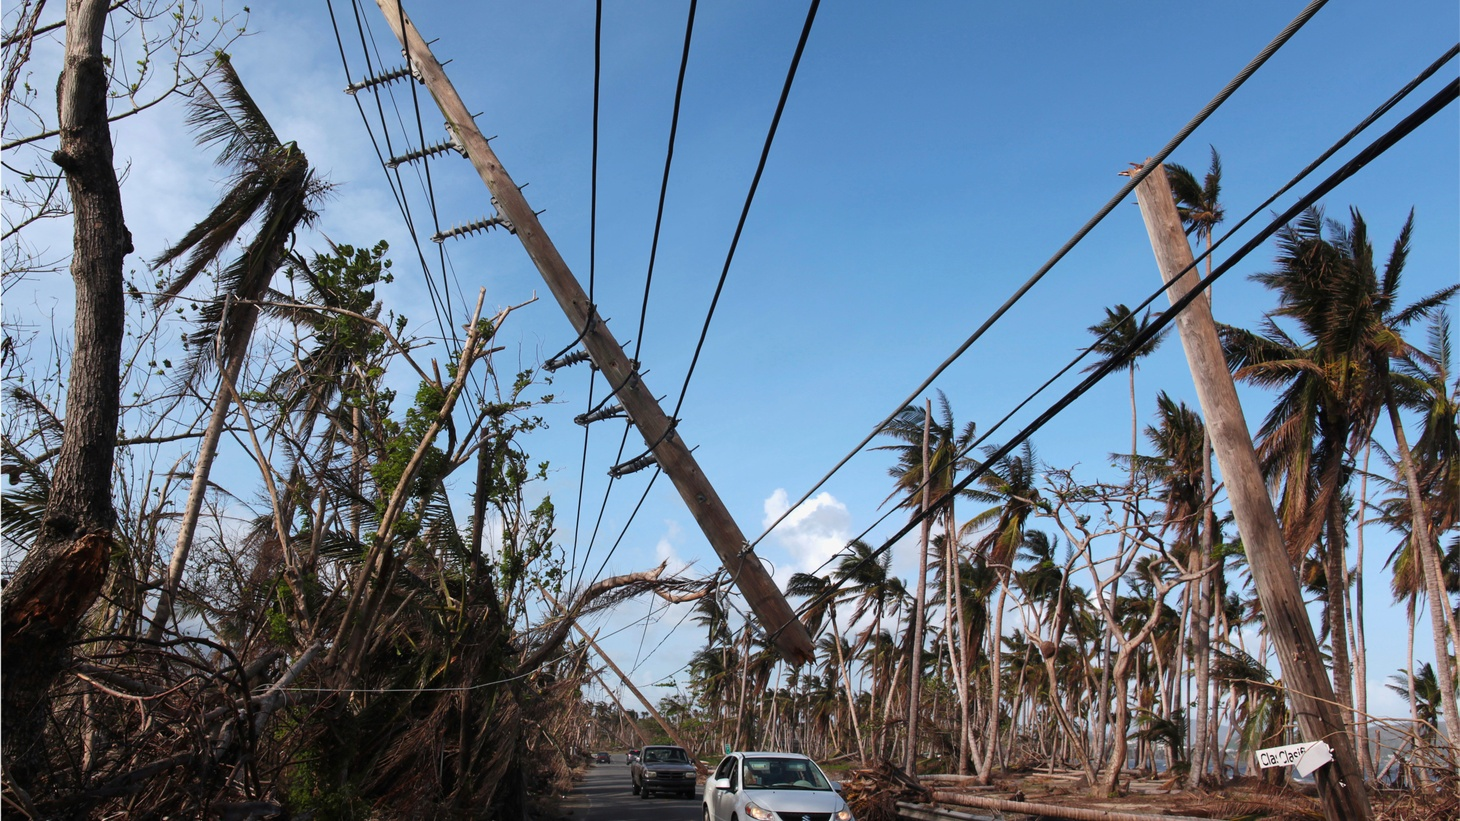 It's been just over a month since Hurricane Maria struck Puerto Rico. Almost 80 percent of residents still don't have electricity. Now Puerto Rico's state-owned utility company has awarded a $300 million contract to rebuild its power grid. The award went to a 2-year-old firm in Montana.